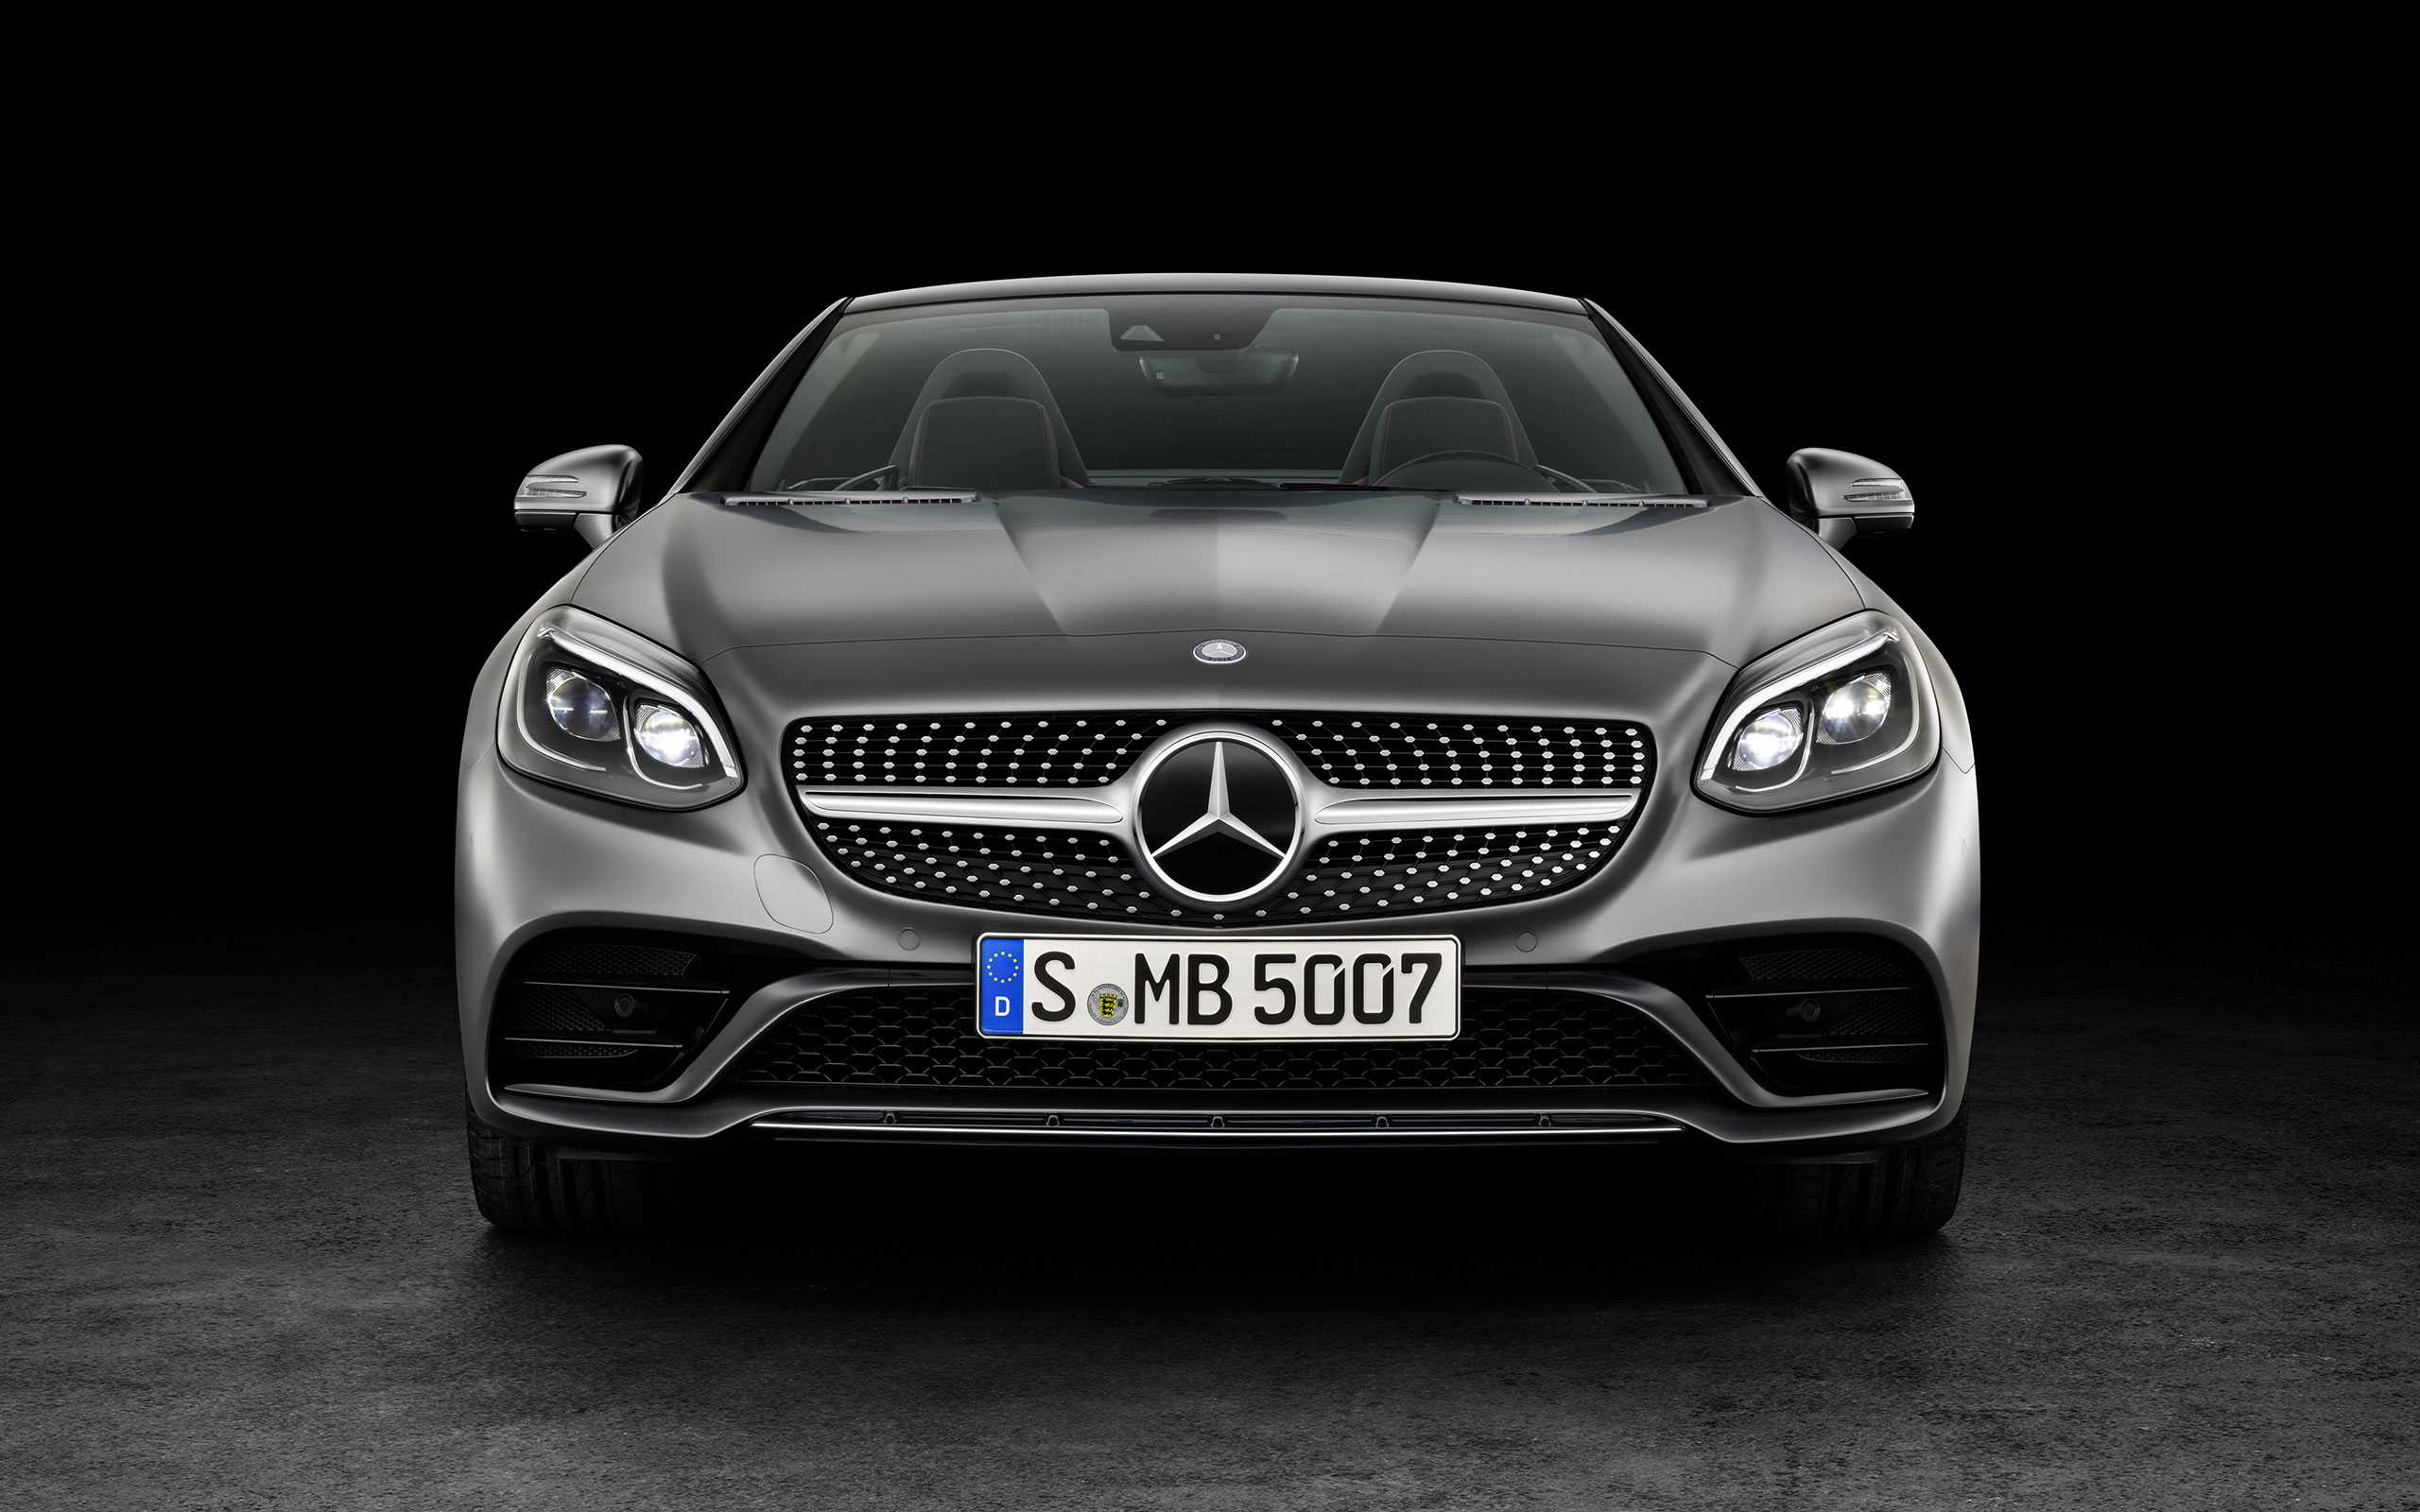 The New 2017 Slc